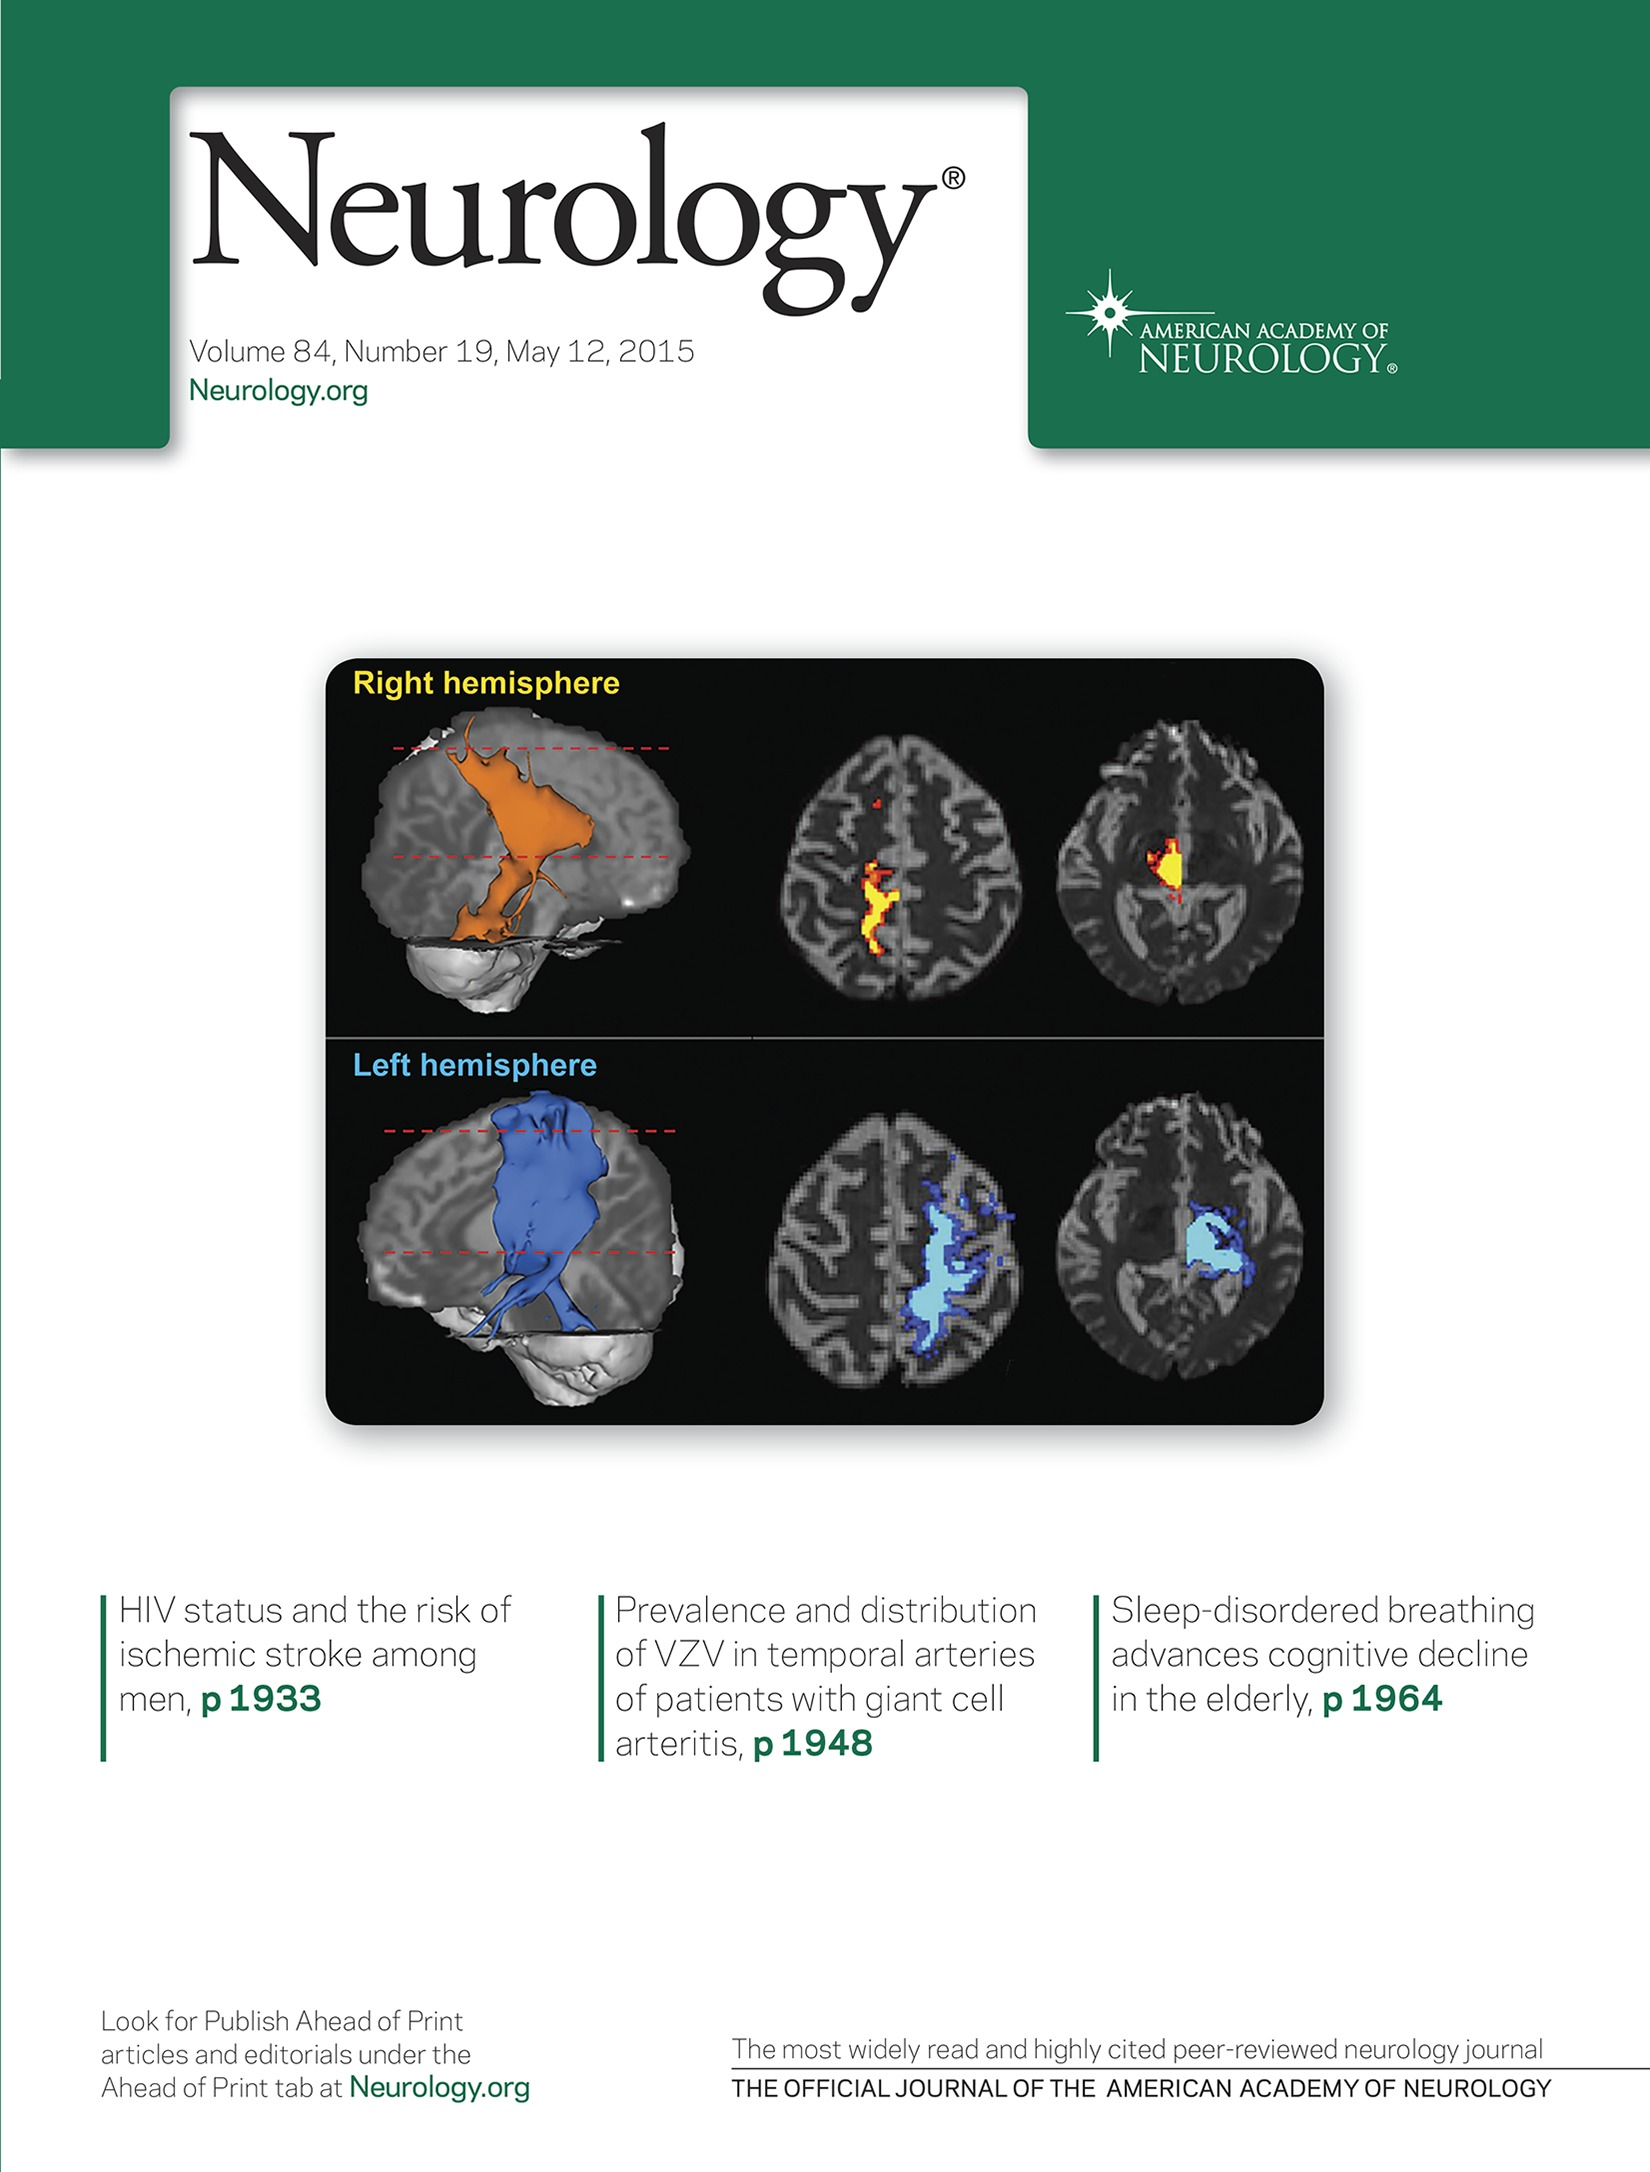 HIV status and the risk of ischemic stroke among men | Neurology